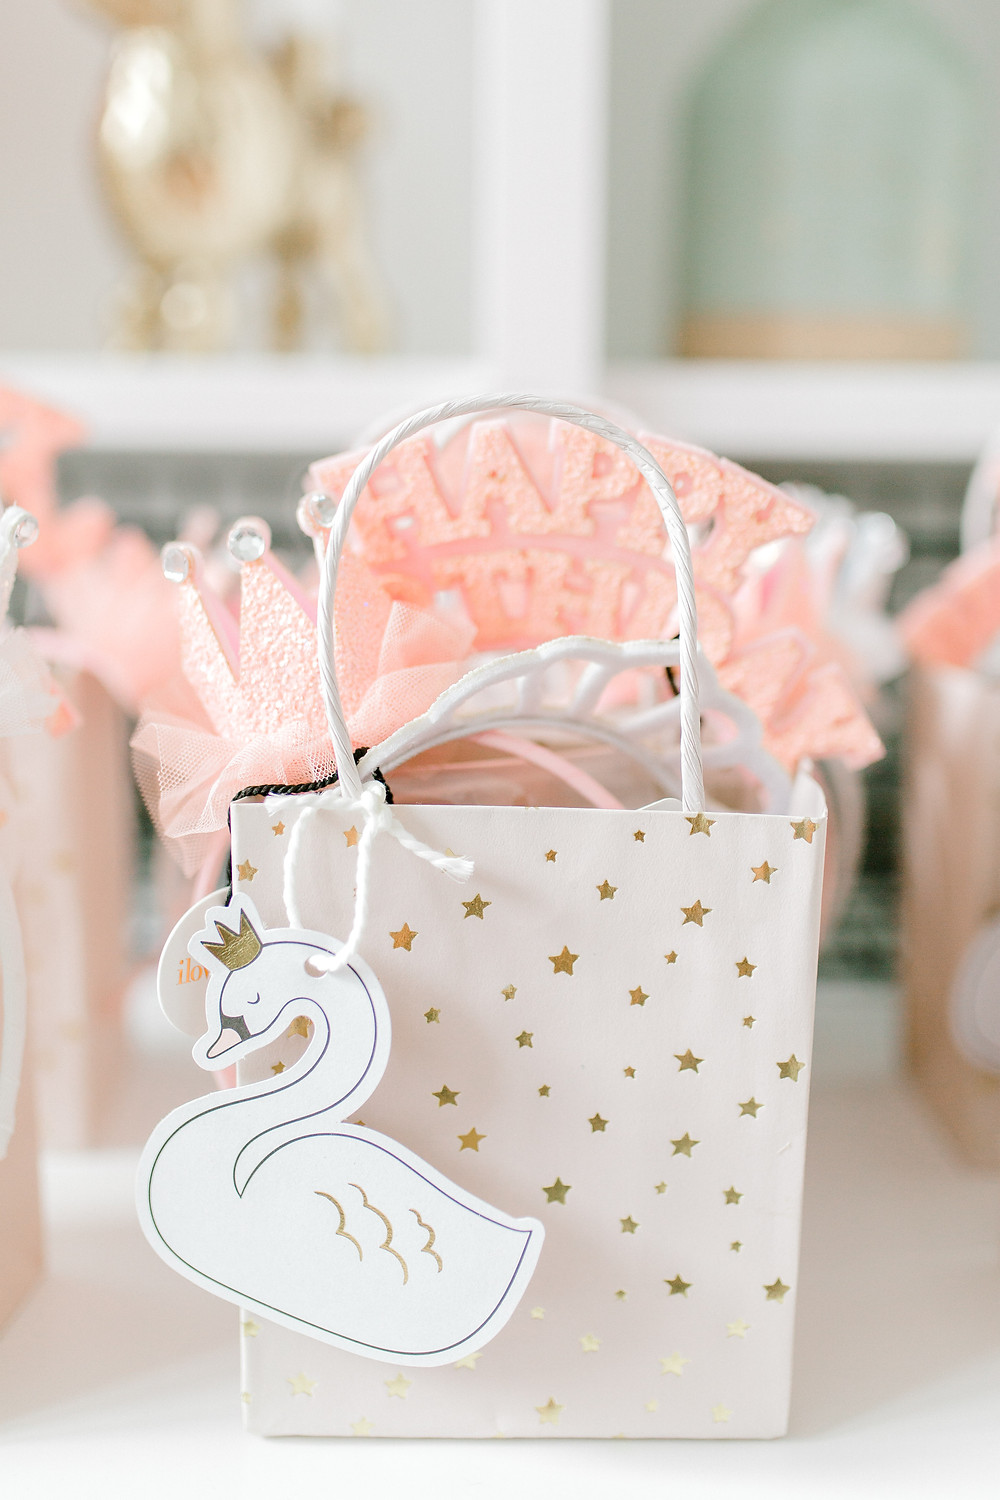 A white gift bag with gold stars, pink tulle, white crown and a white swan attached to it at a nutcracker party.